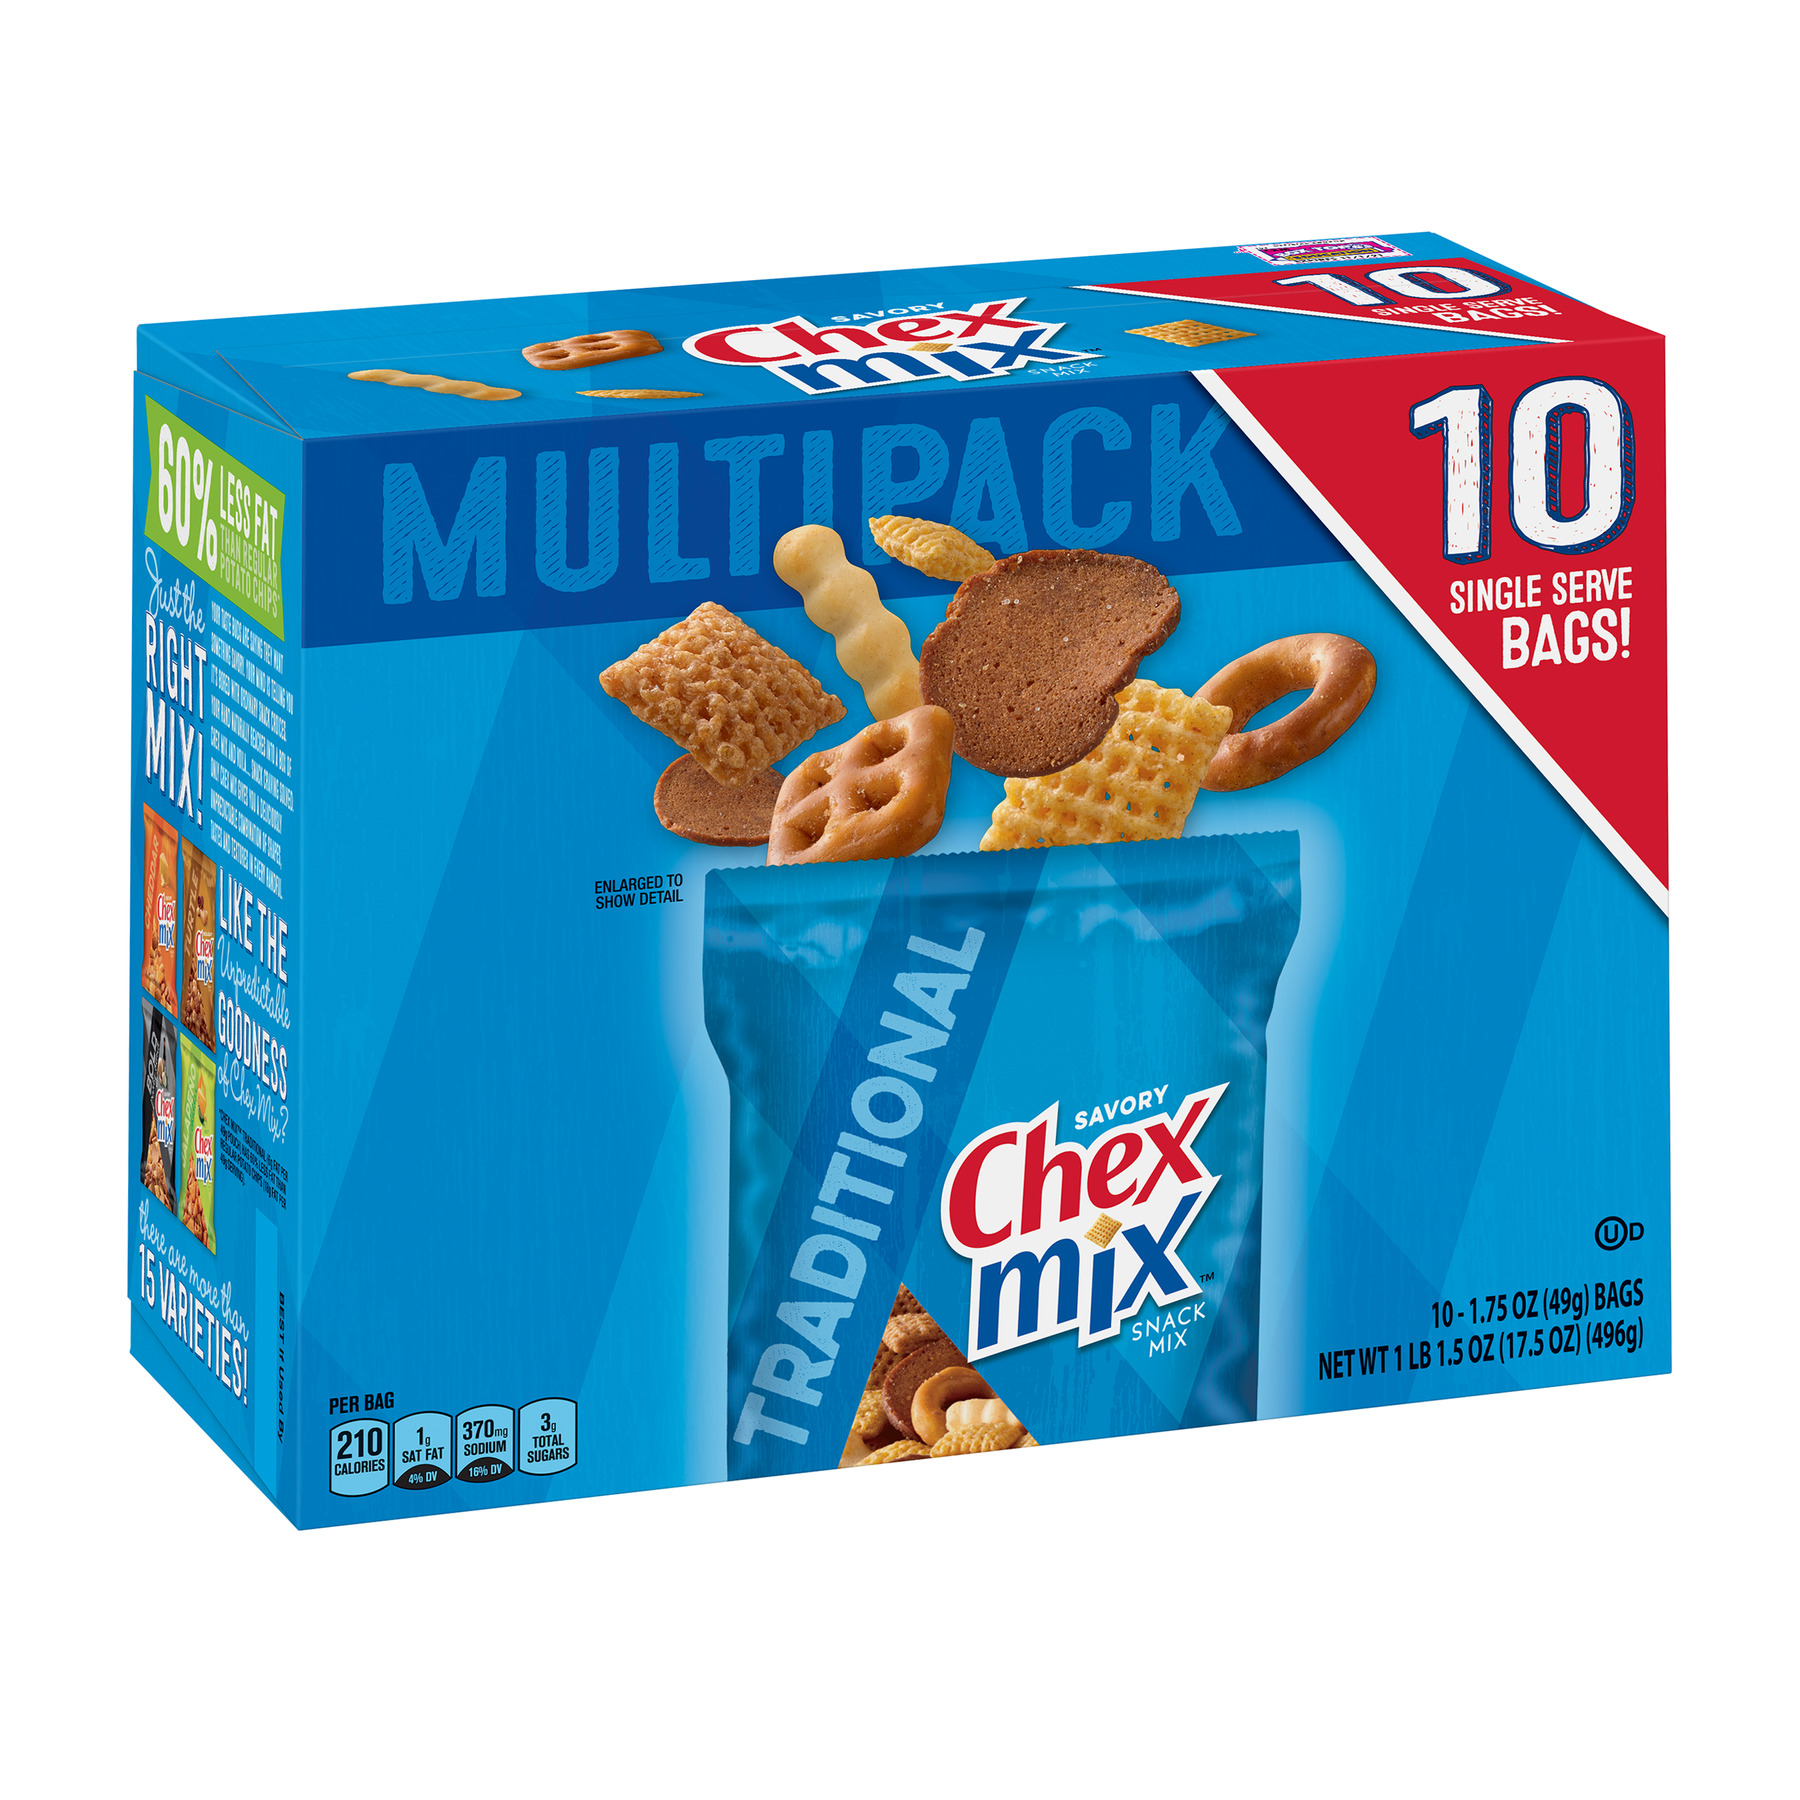 Chex Mix Savory Traditional Snack Mix, 17.5 oz